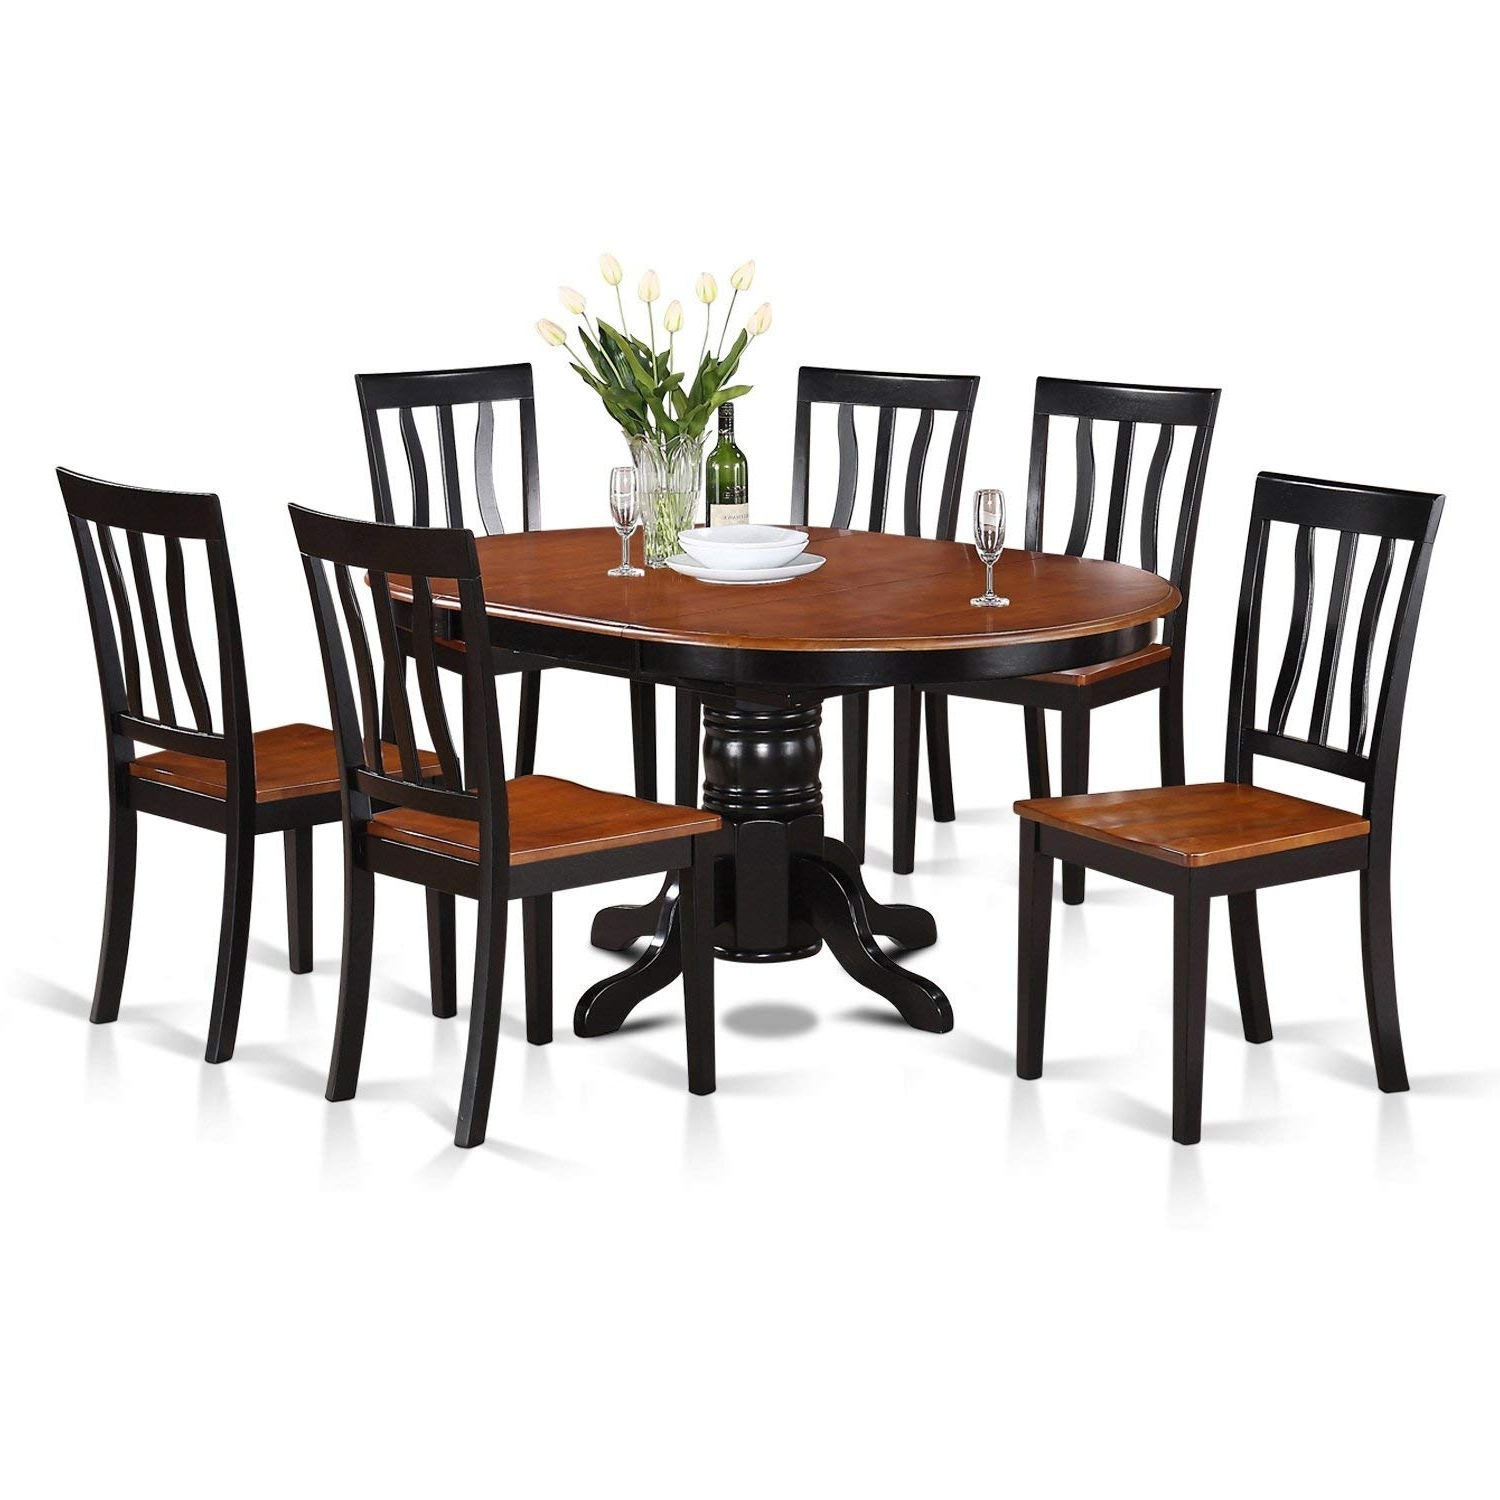 Most Recent Amazon: East West Furniture Avat7 Blk W 7 Piece Dining Table Set In Jaxon Grey 6 Piece Rectangle Extension Dining Sets With Bench & Wood Chairs (Gallery 10 of 25)